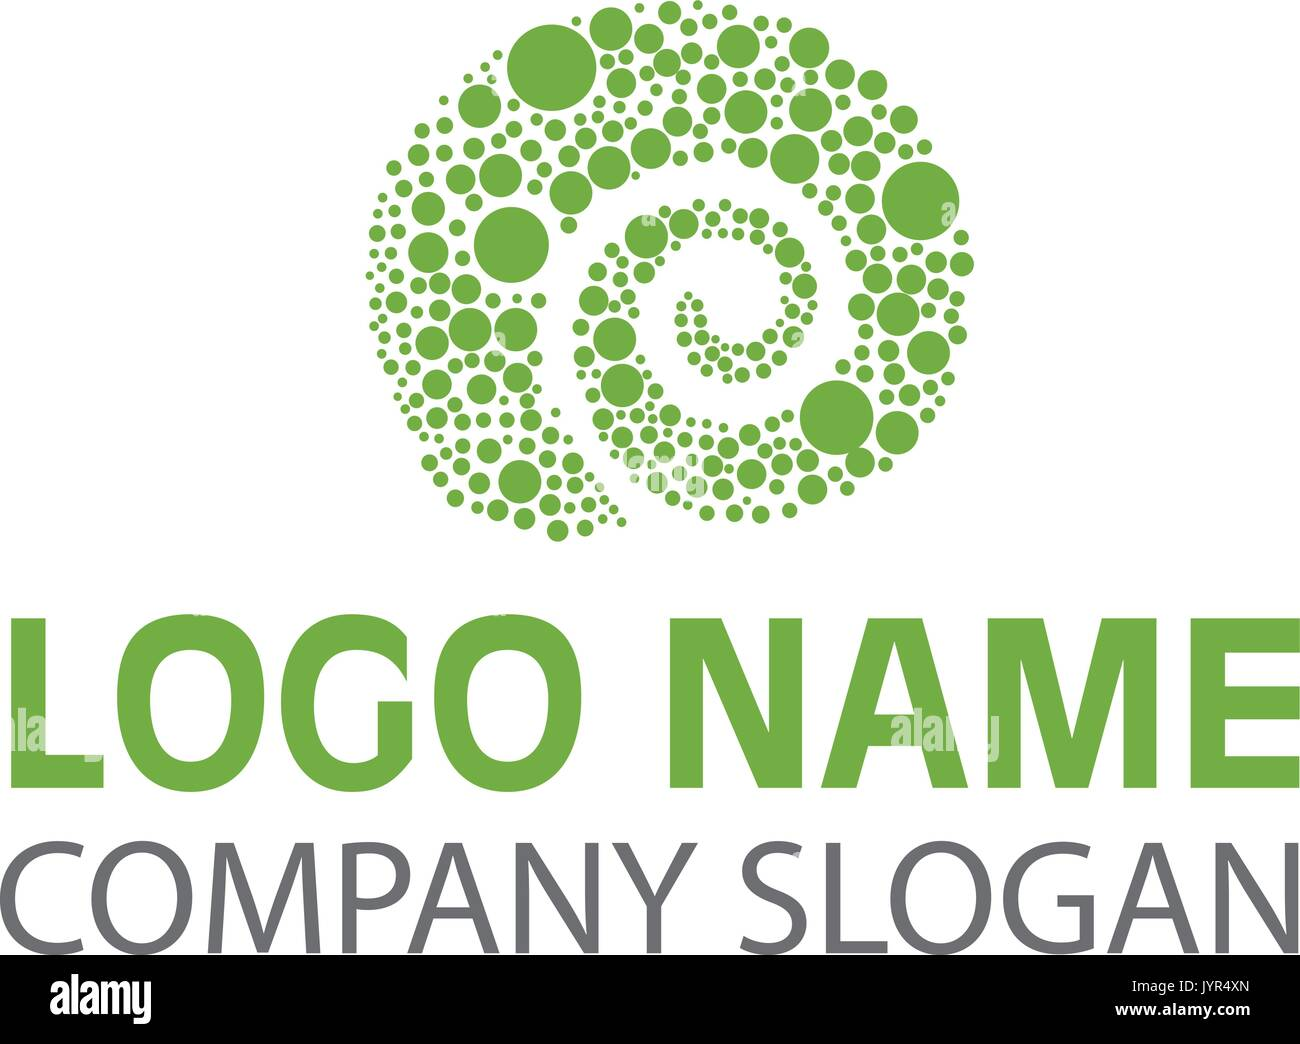 Chameleon Style Vector Creative Chameleon Or Lizard Logo Design Clean And